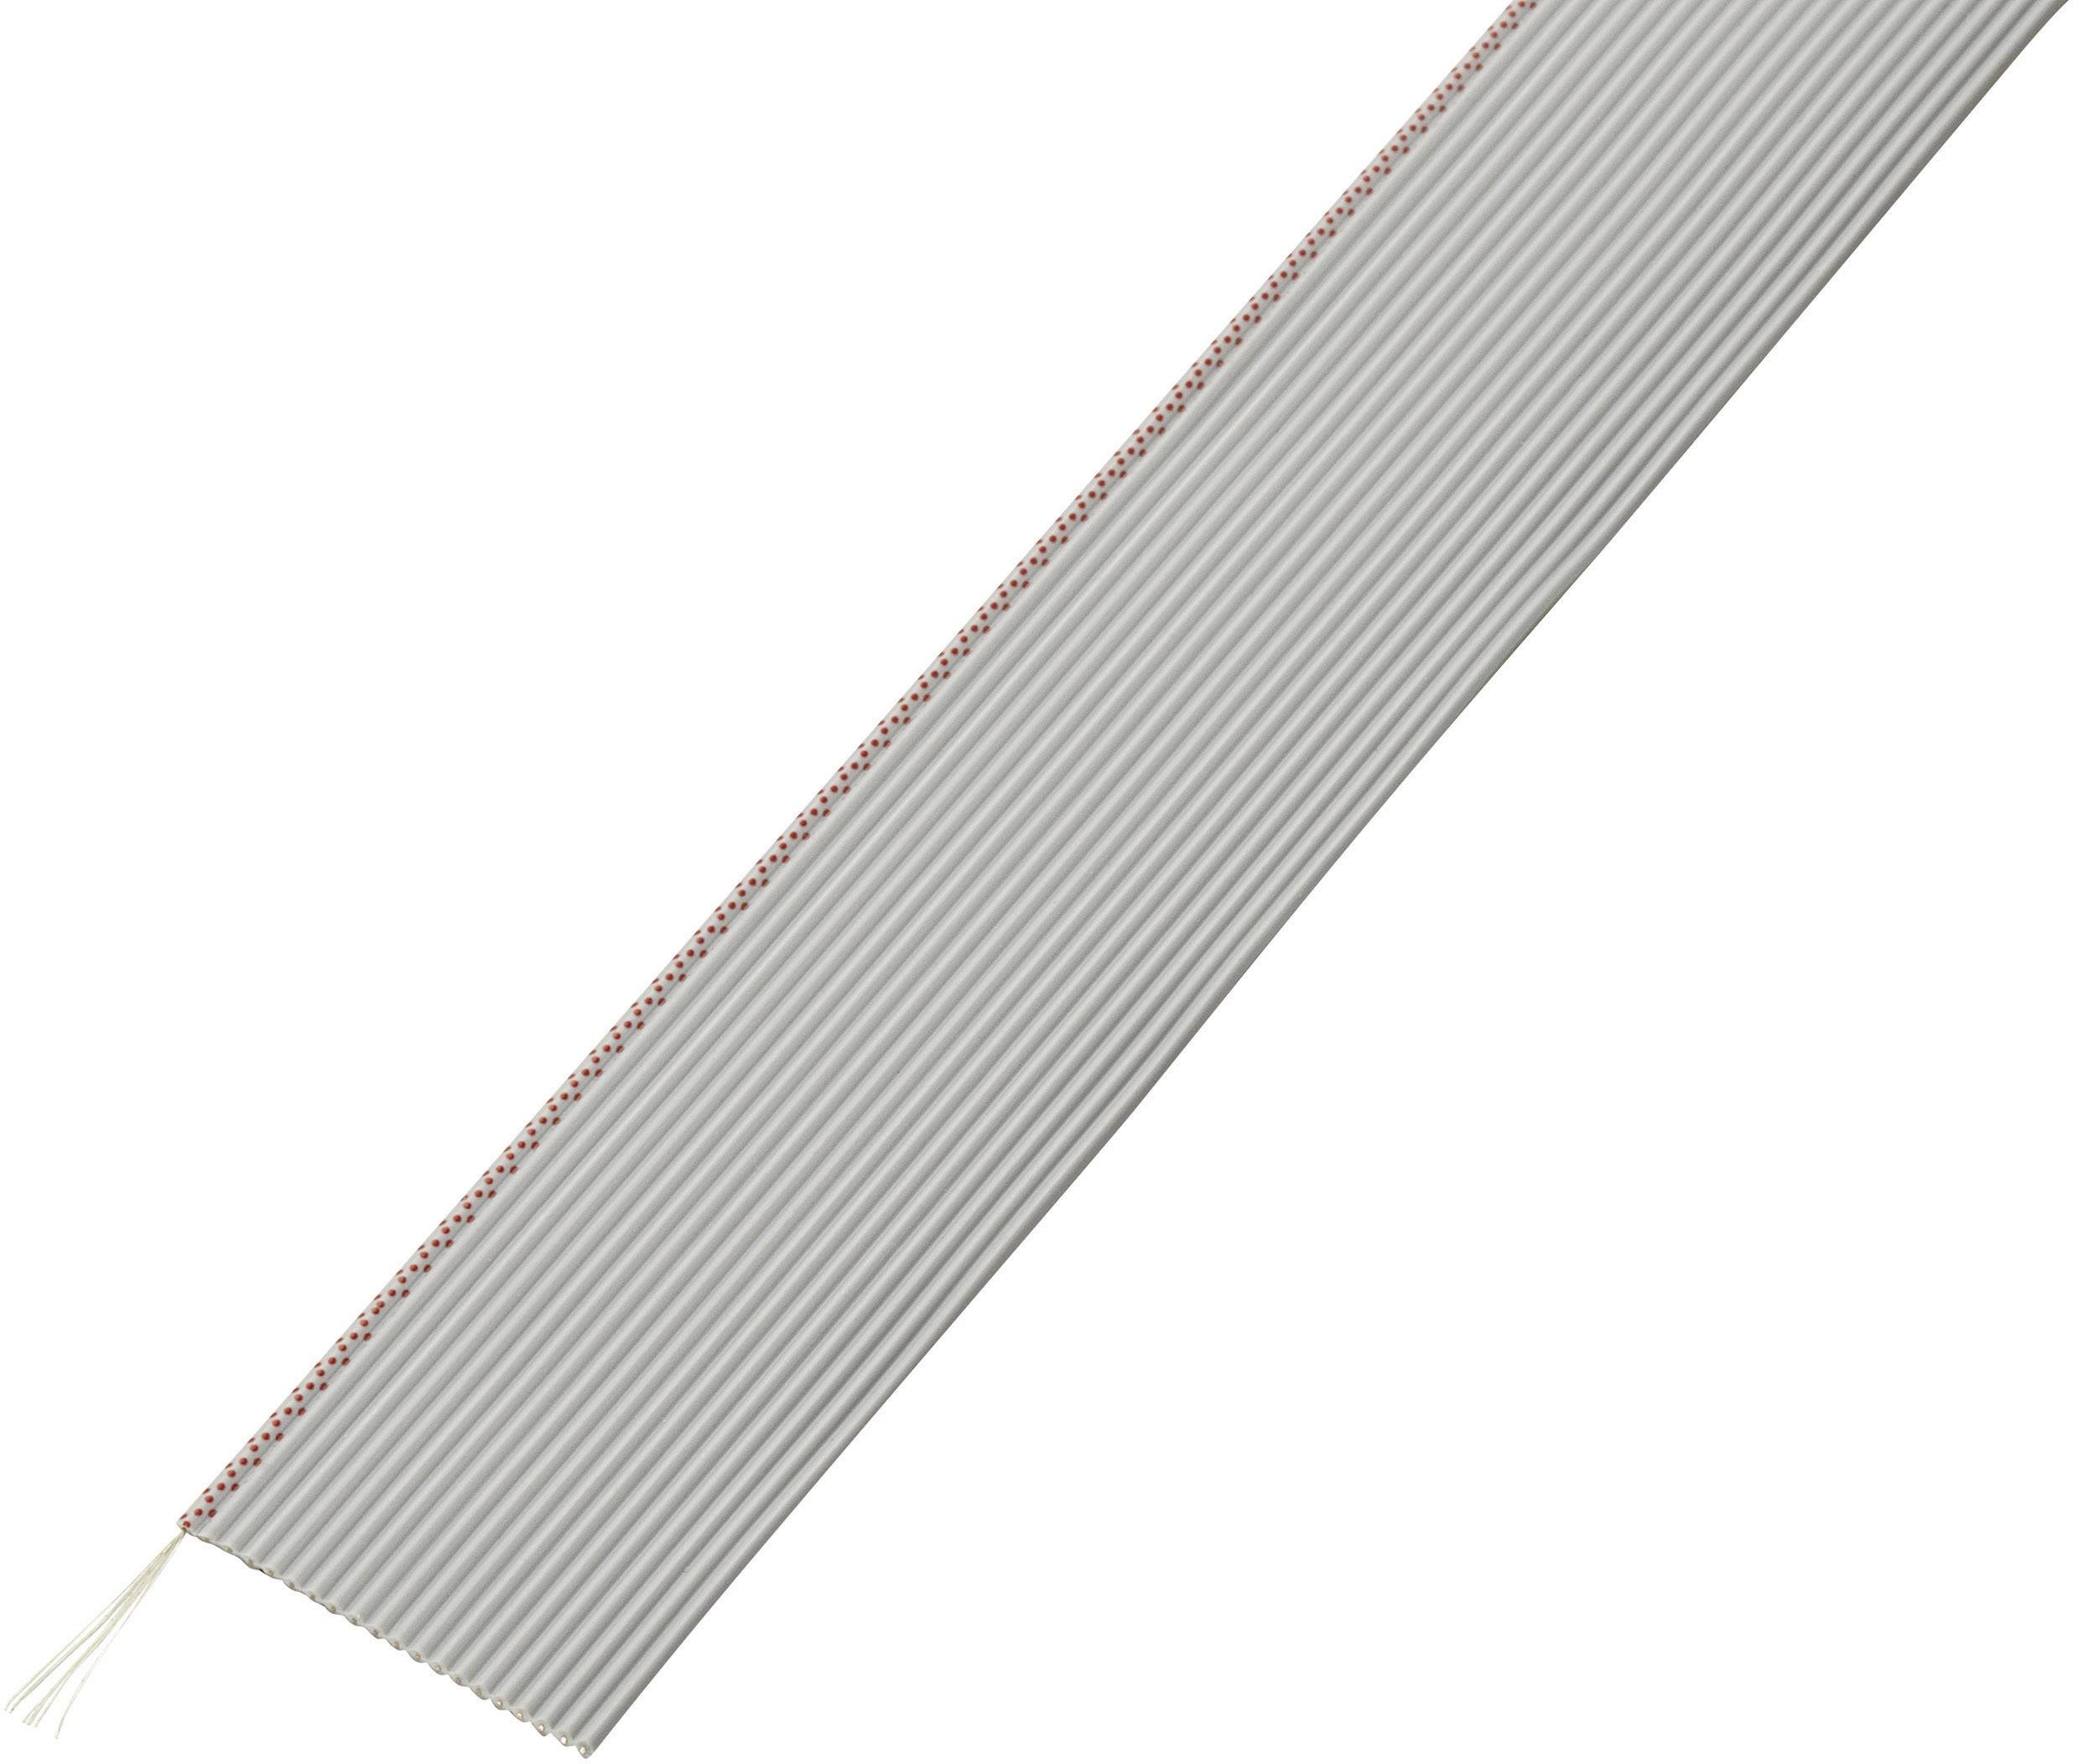 Ribbon cable